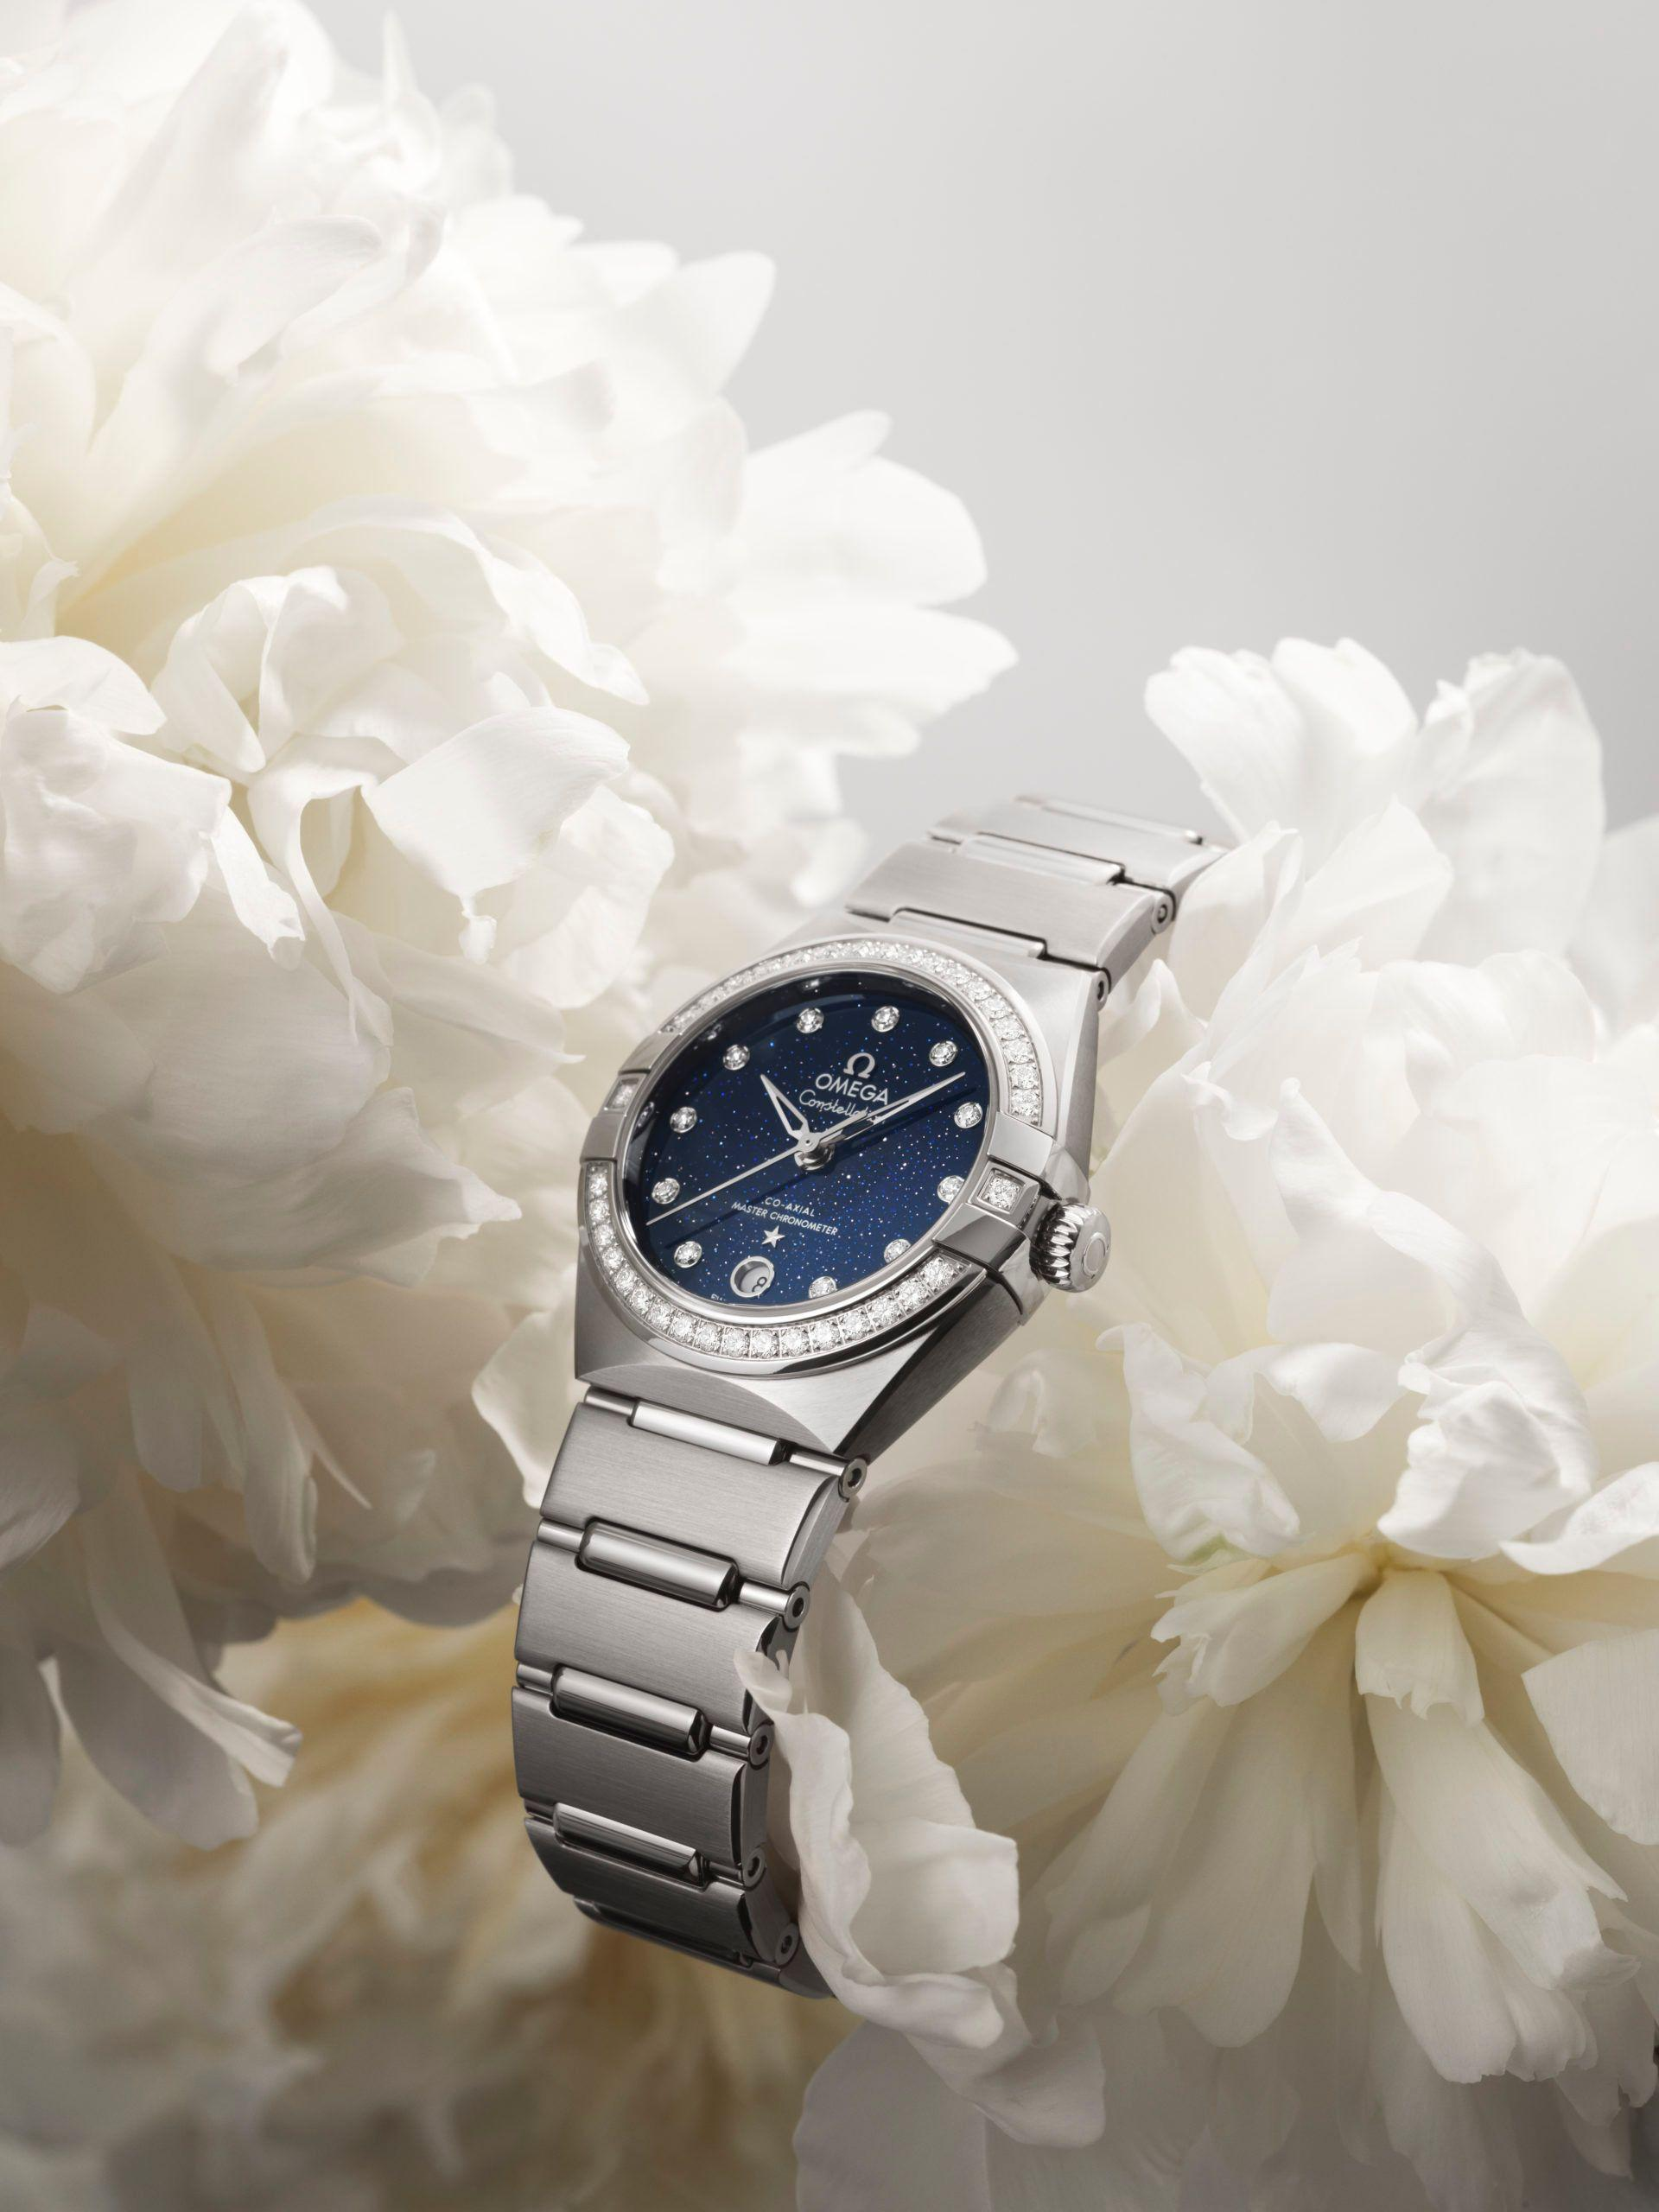 New OMEGA Aventurine Dial Constellation Watches - Diamond Bezel